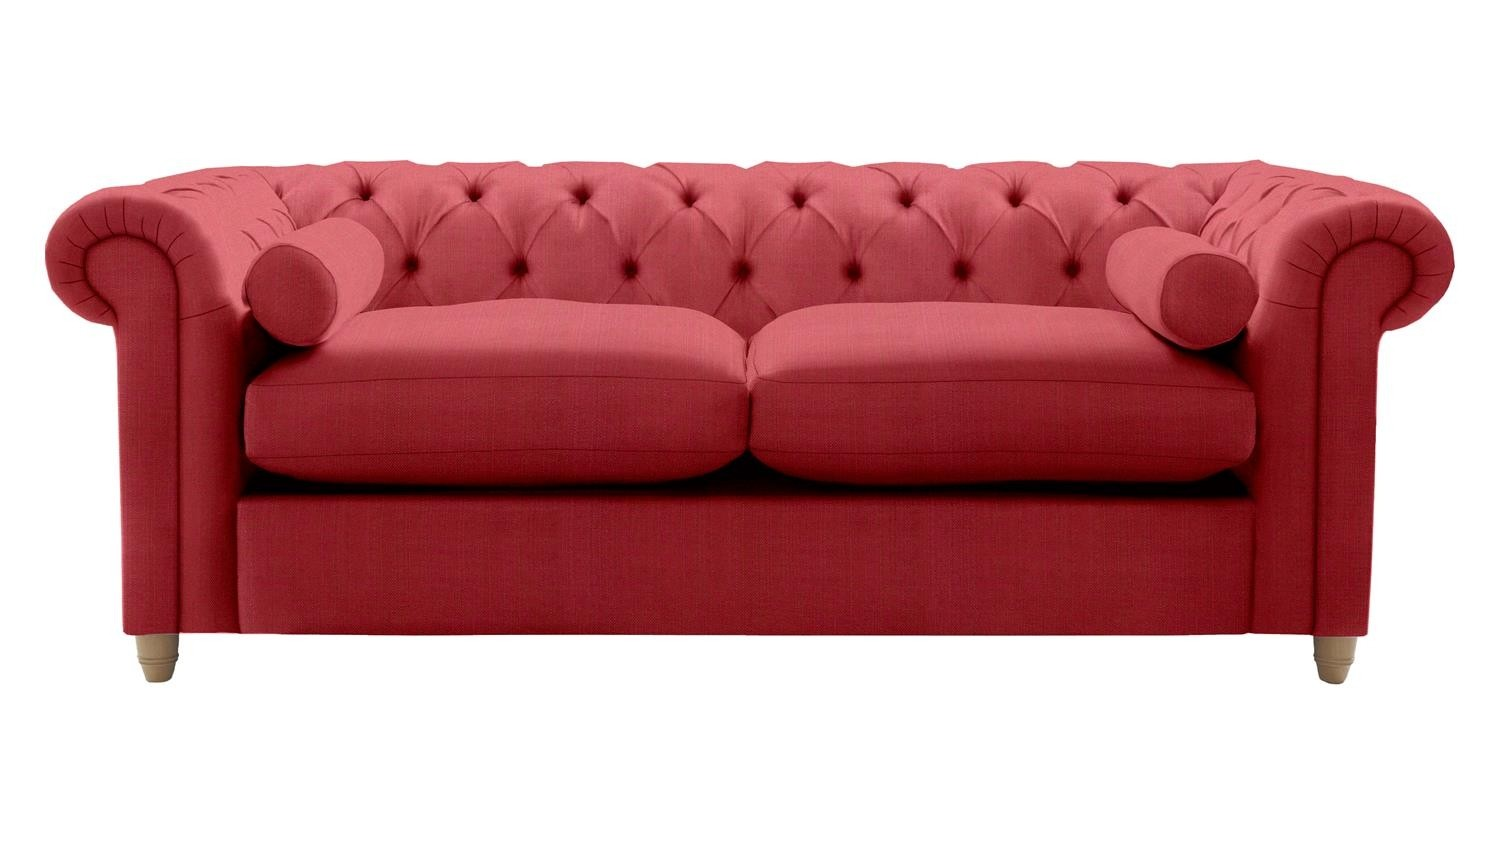 The Bulford 3 Seater Sofa Bed